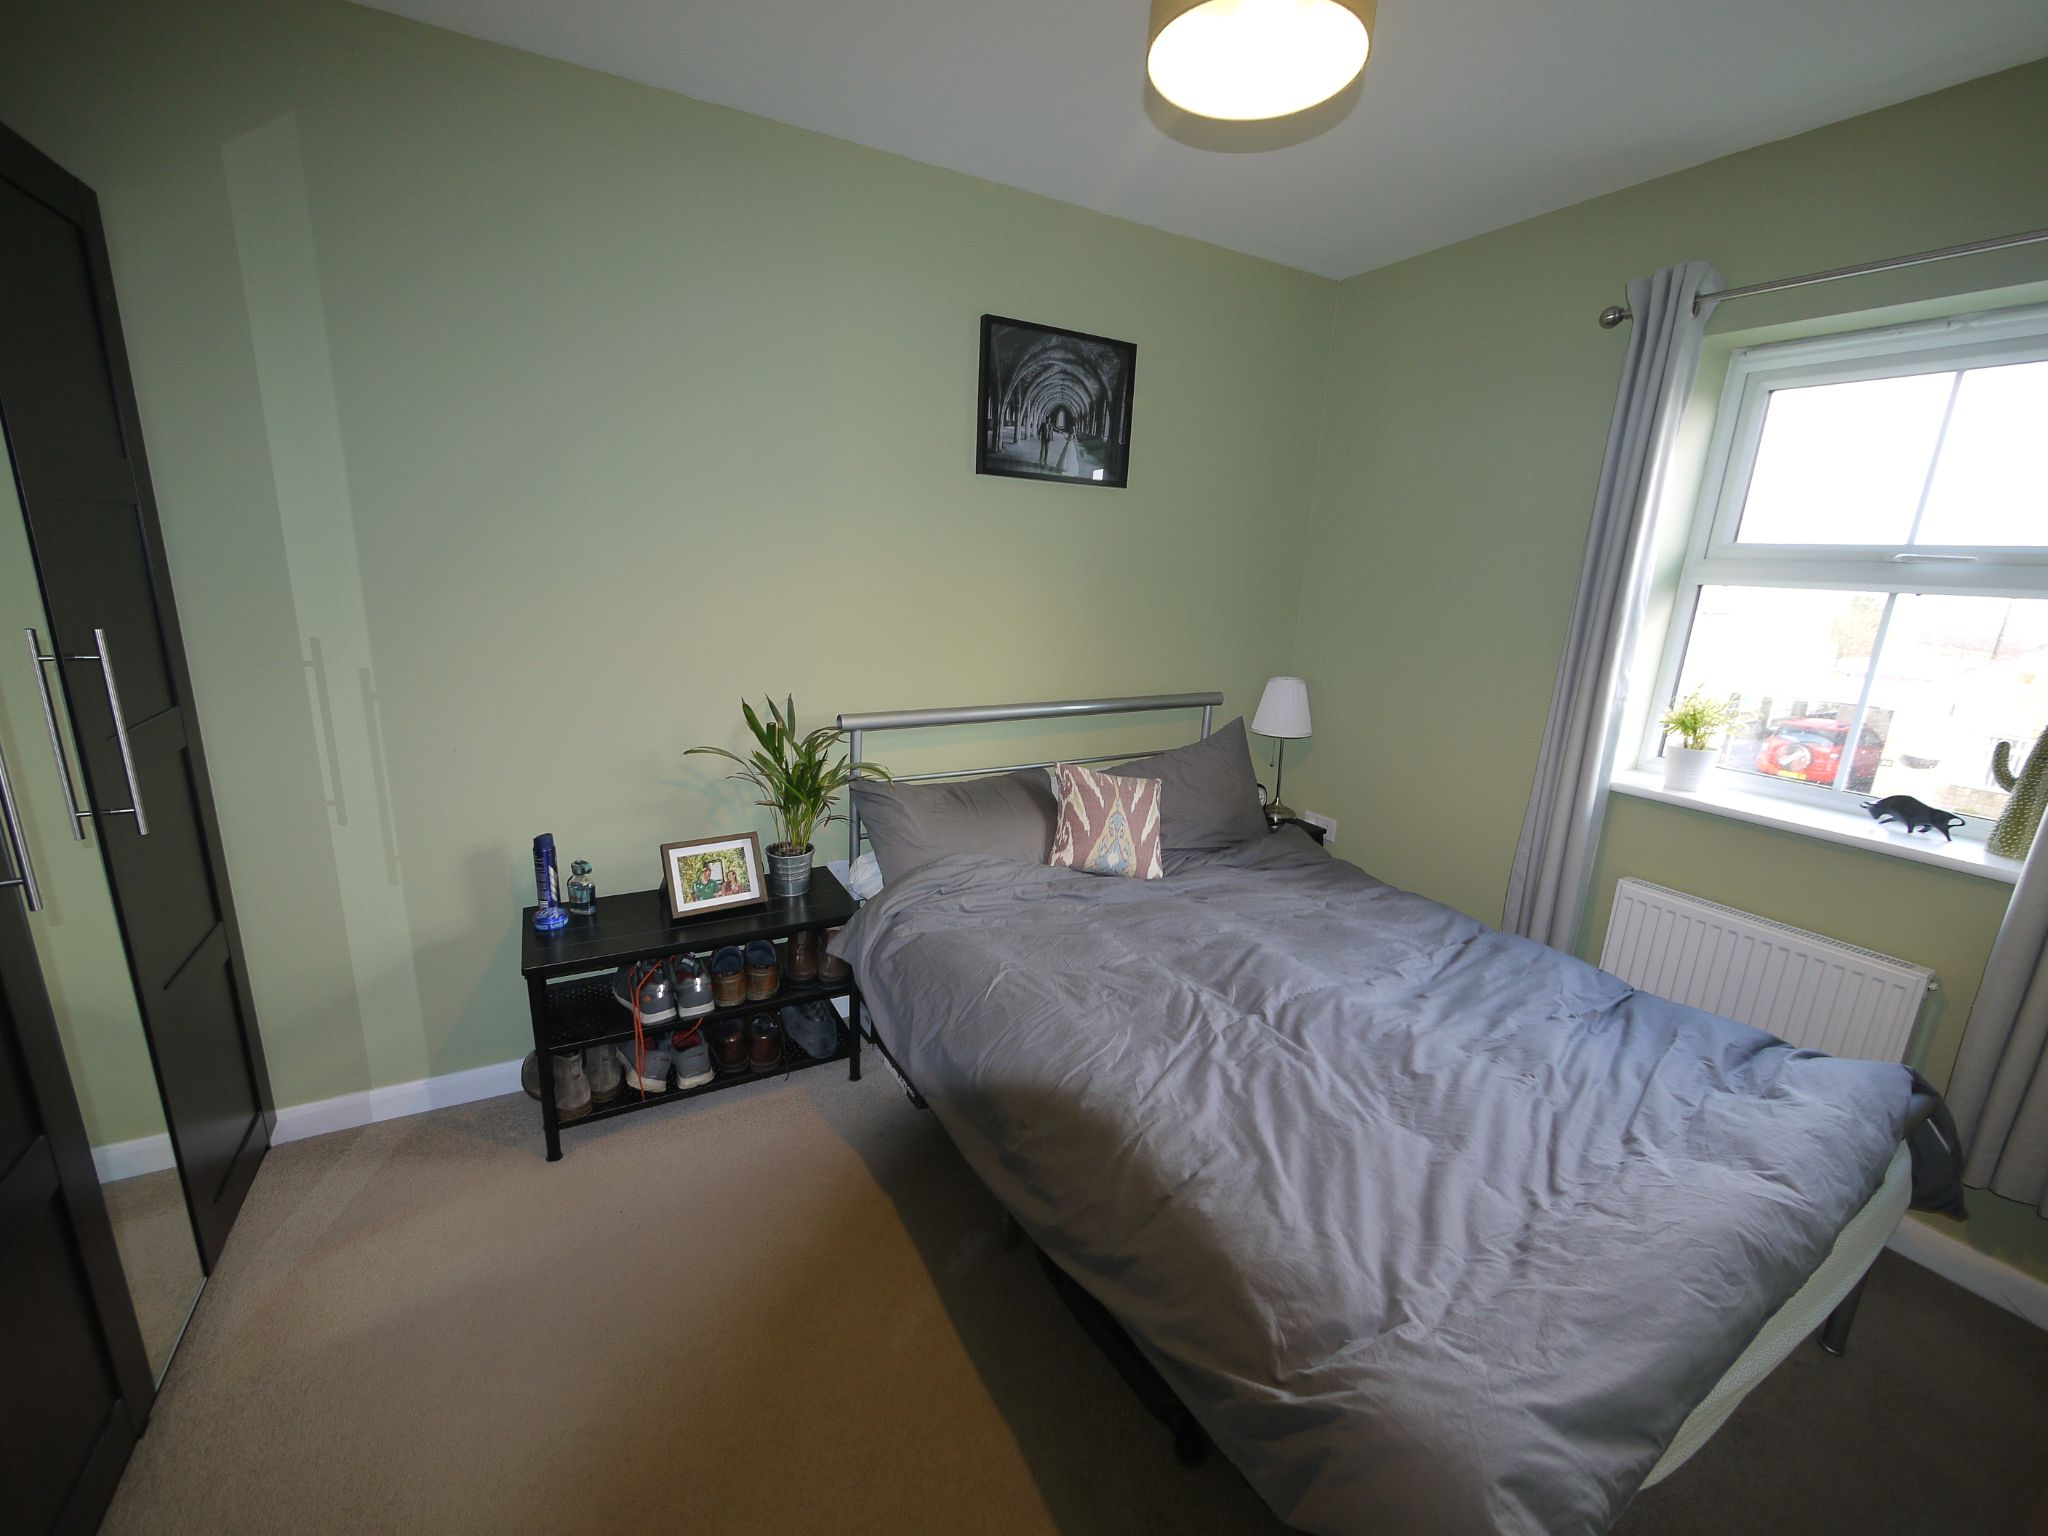 3 bedroom end terraced house SSTC in Cleckheaton - Bed 2.